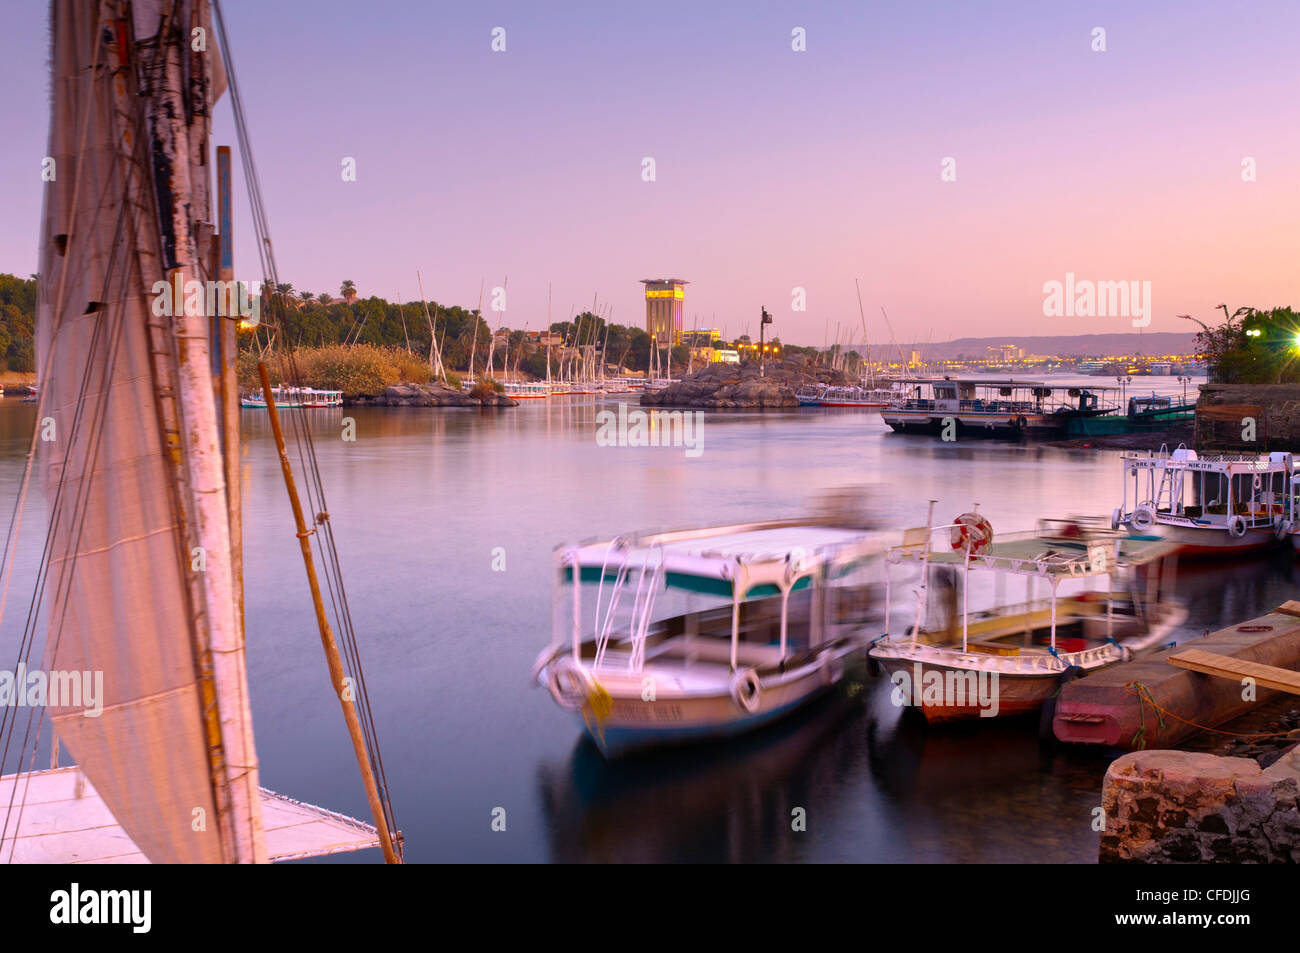 River Nile, Aswan, Upper Egypt, Egypt, North Africa, Africa - Stock Image